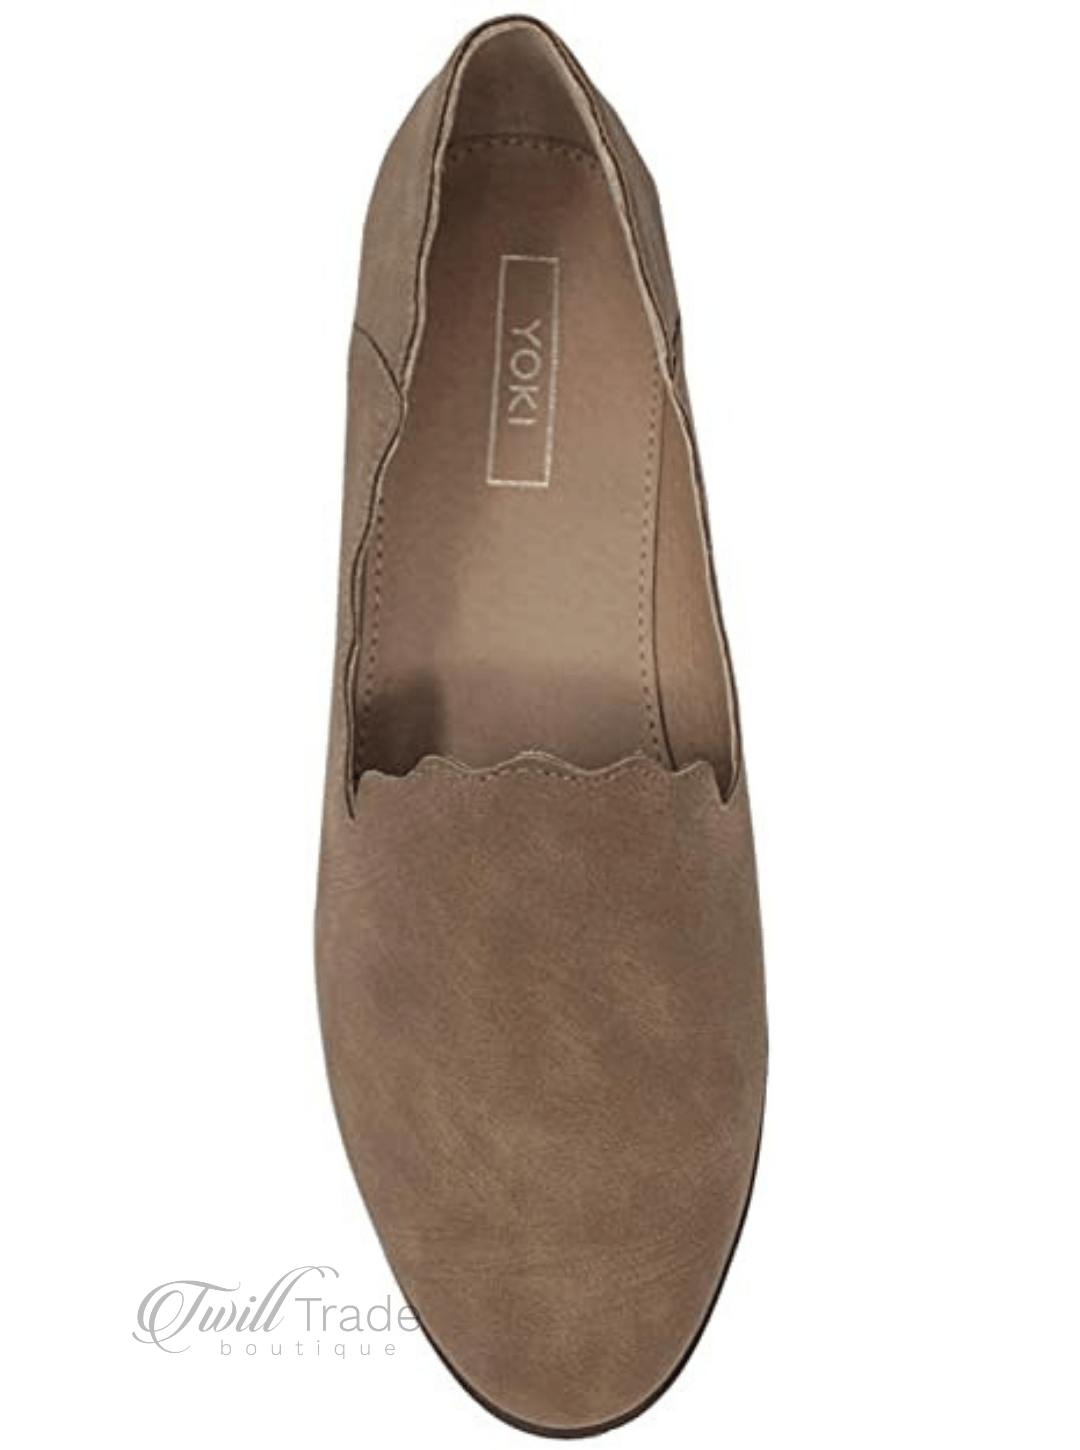 Camel Scalloped Loafers - twill tradE